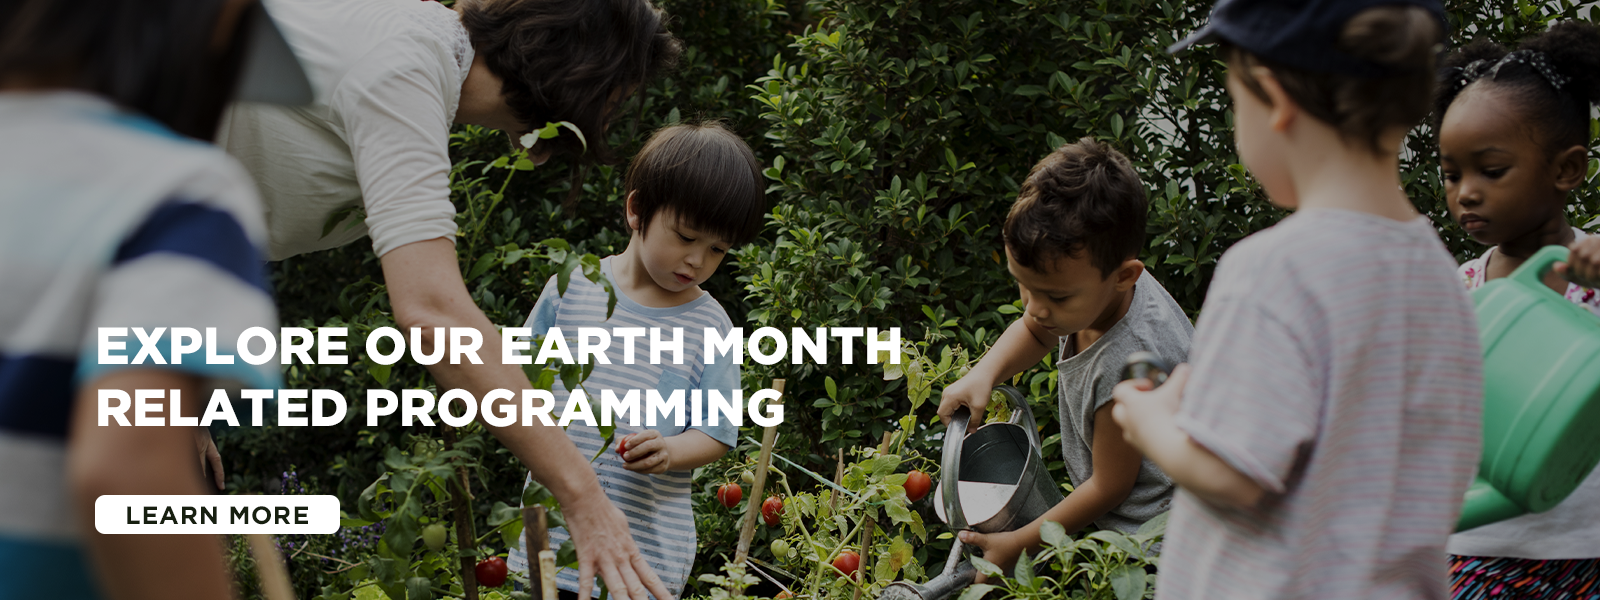 Earth Month